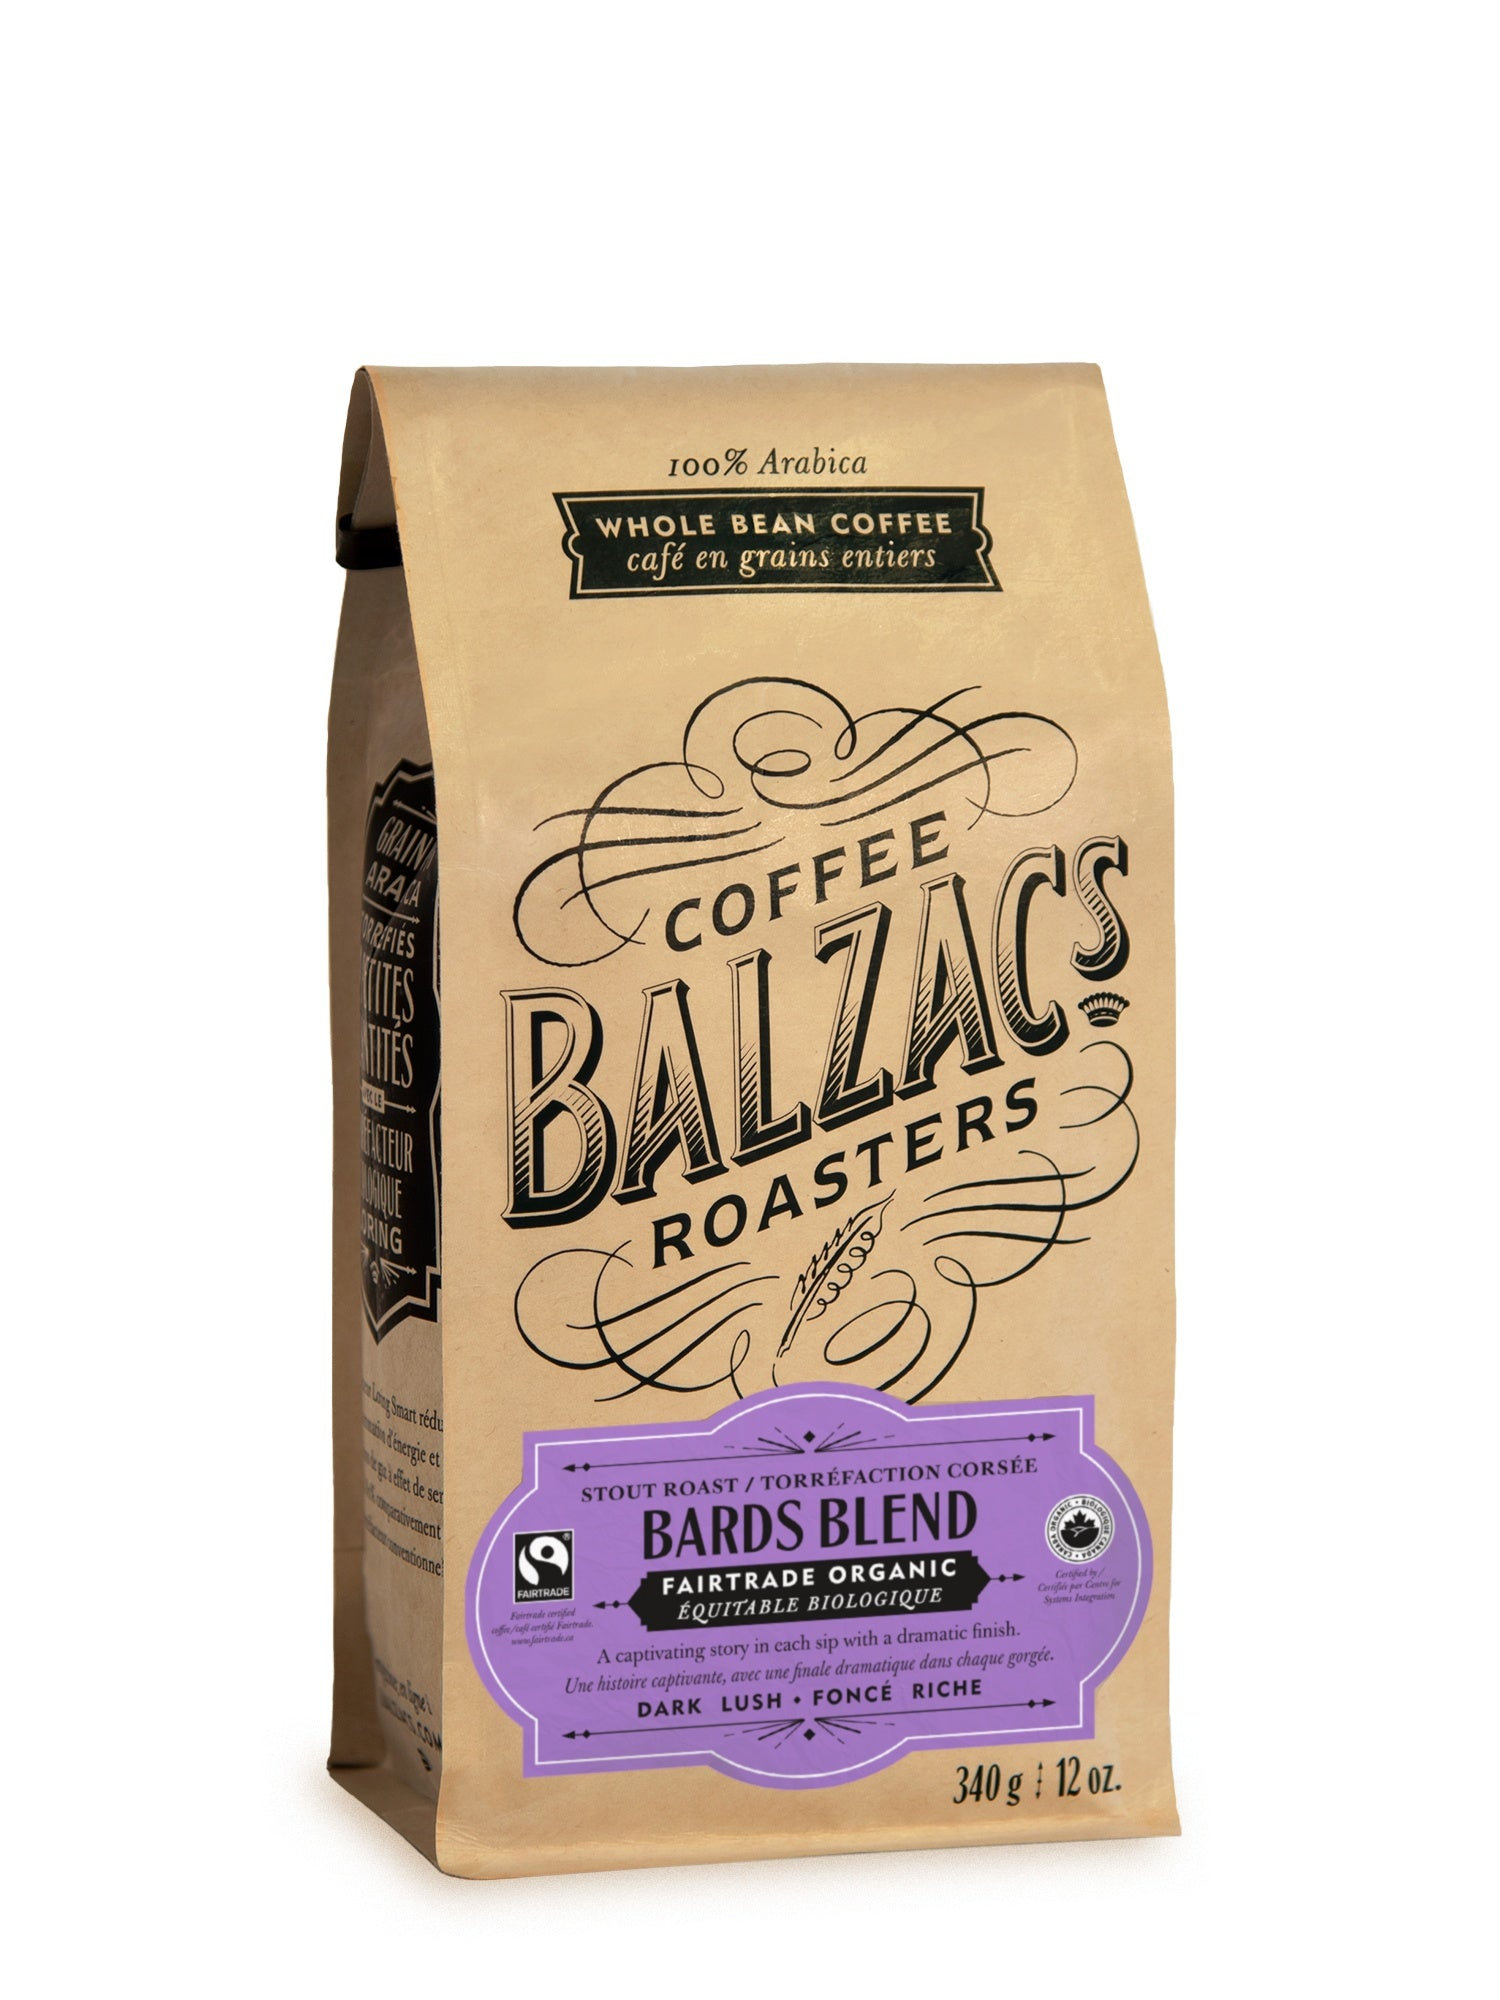 Food & Drink - Balzac's - Bards Blend, 340g